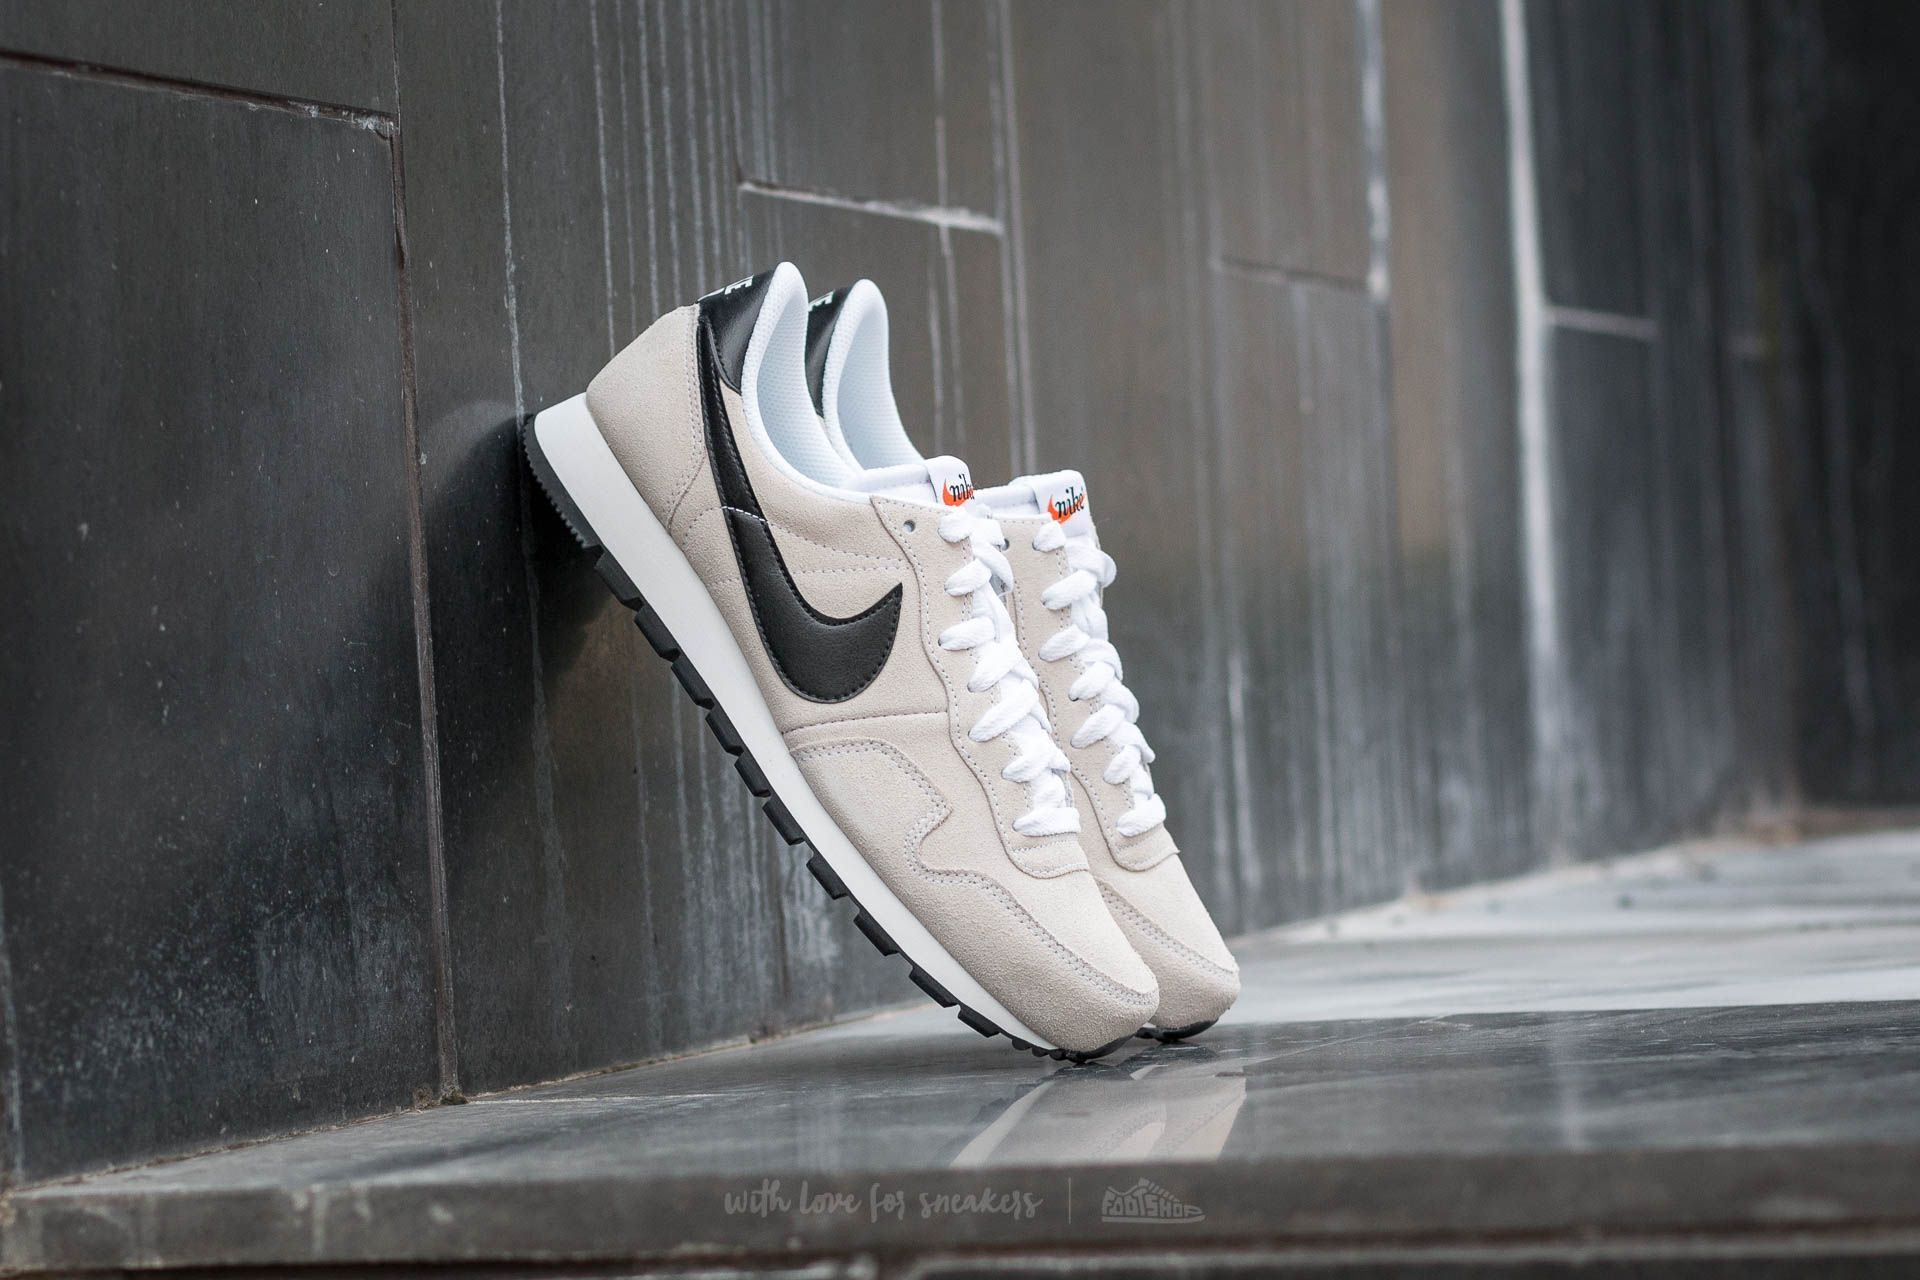 Nike Air Pegasus 83 Leather White Black Summit White | Footshop